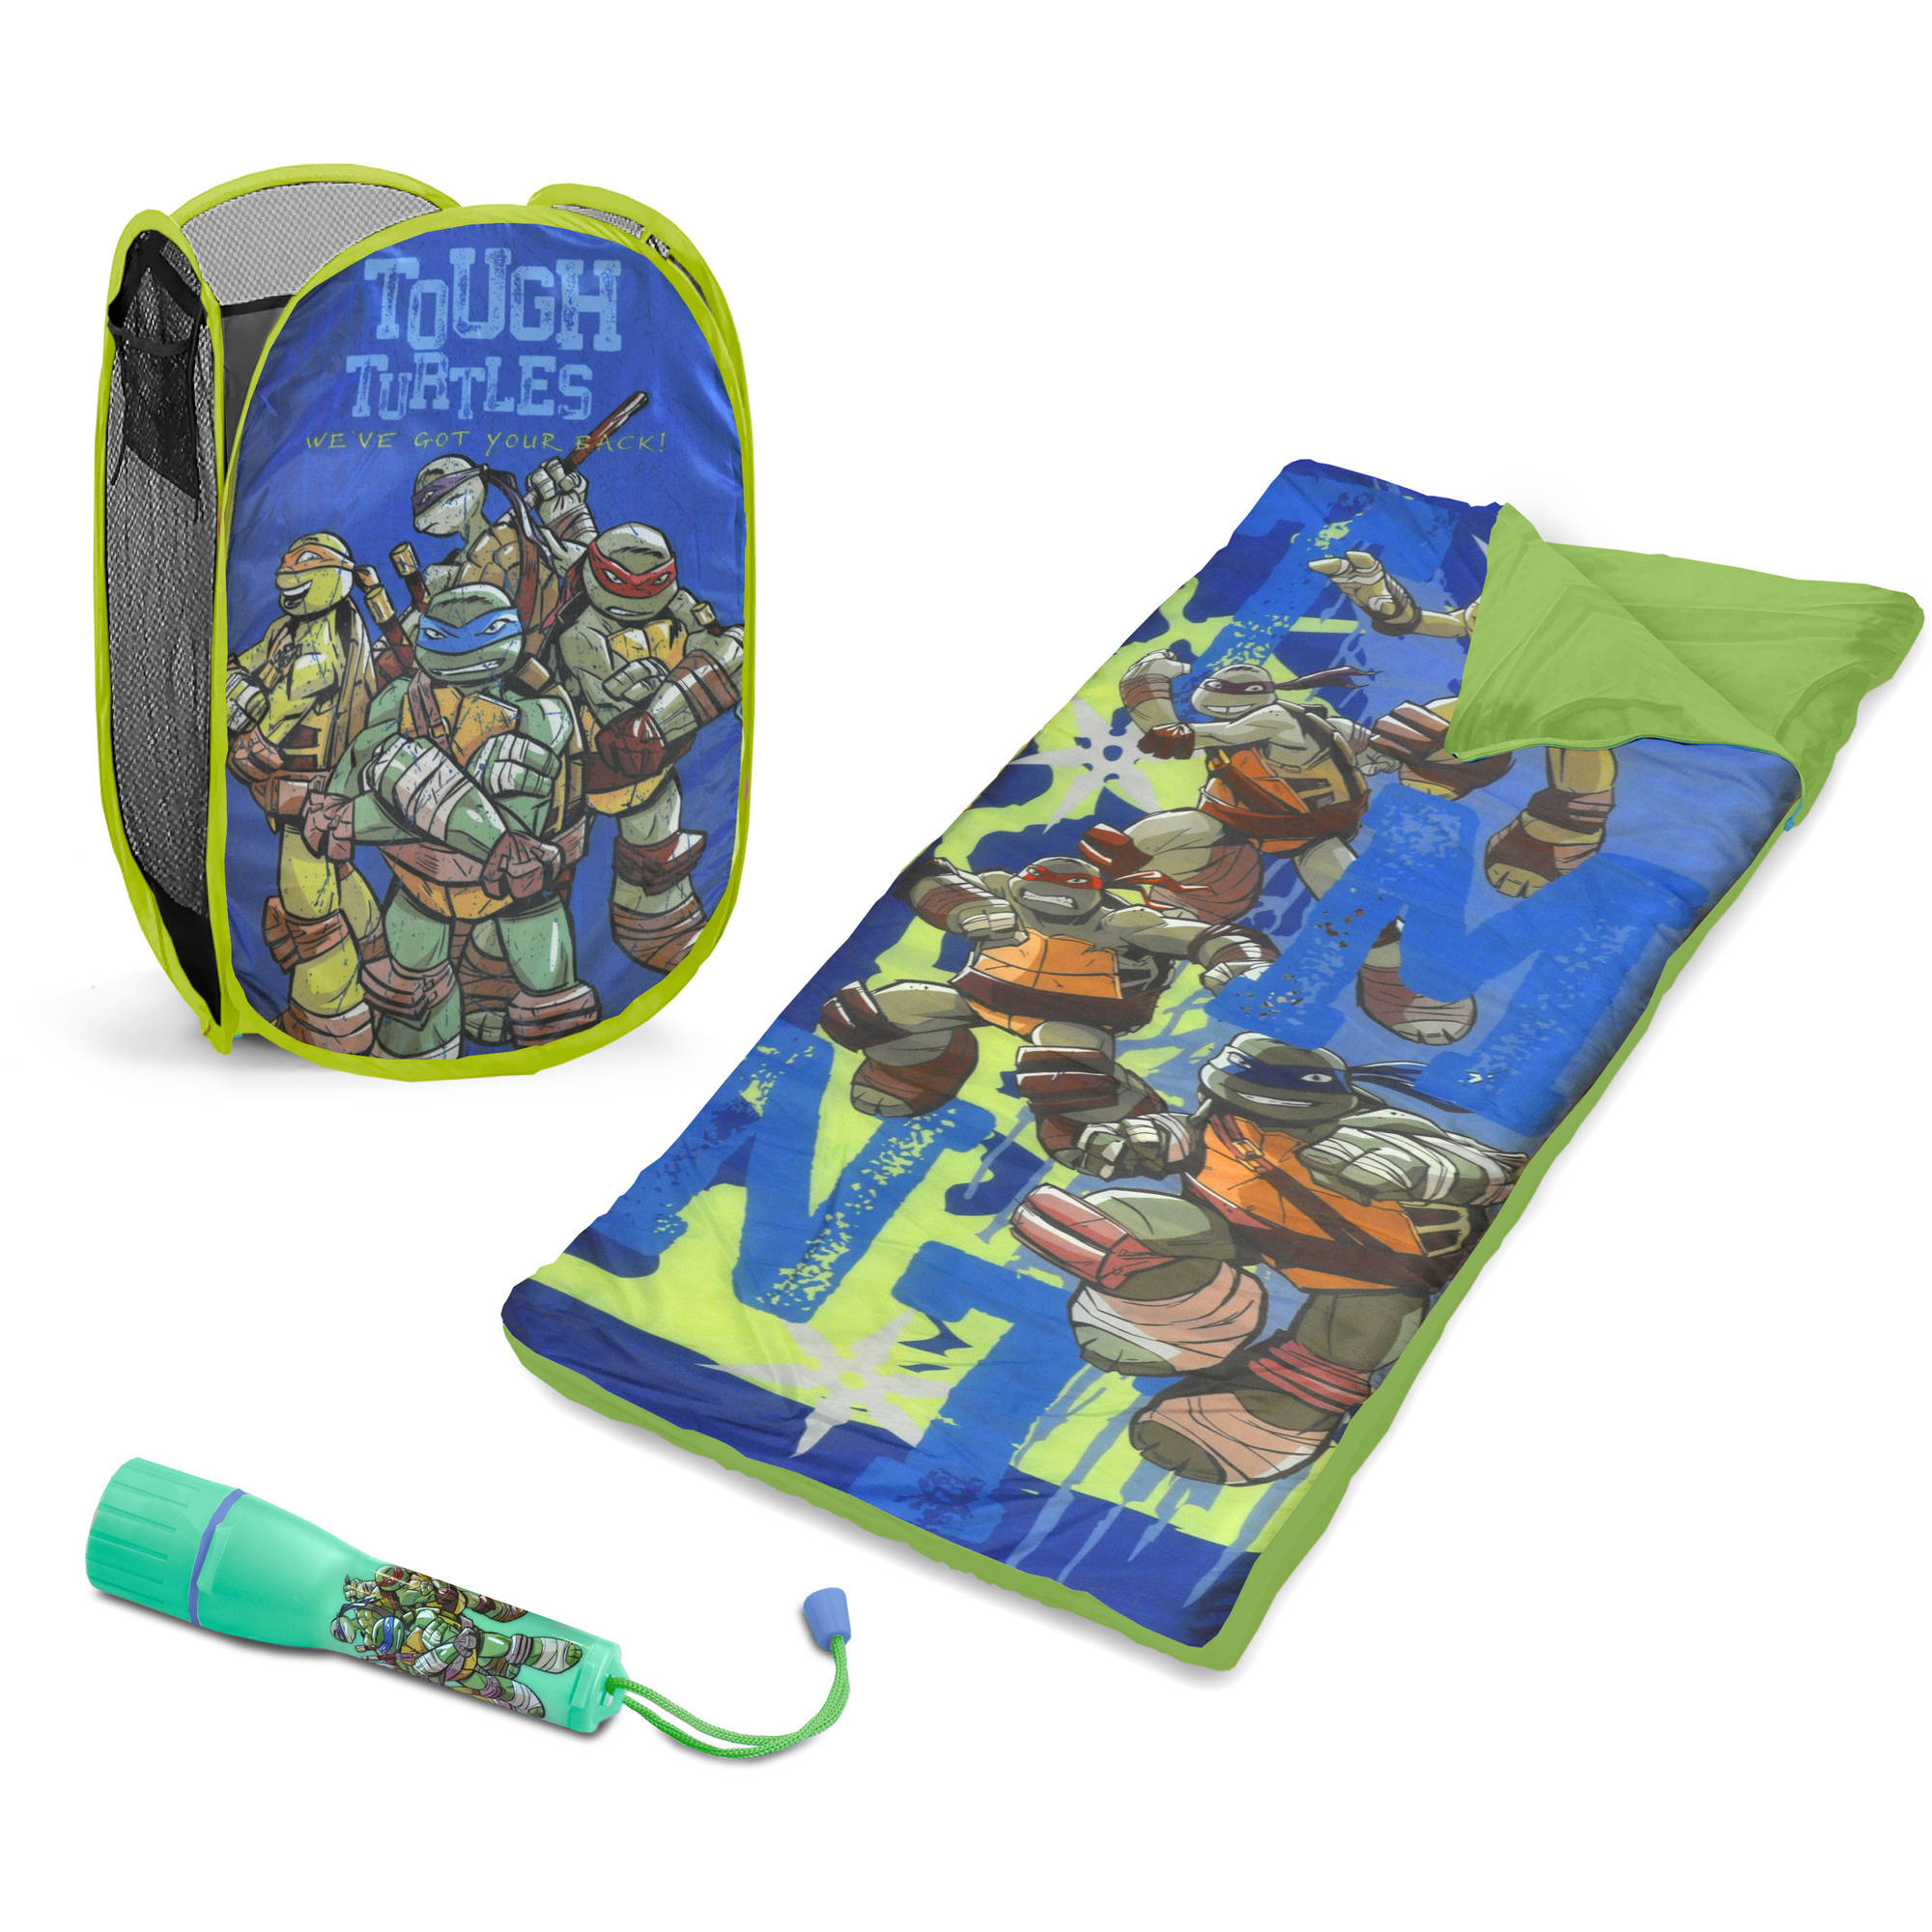 Nickelodeon Ninja Turtles Sleepover Set with BONUS Hamper